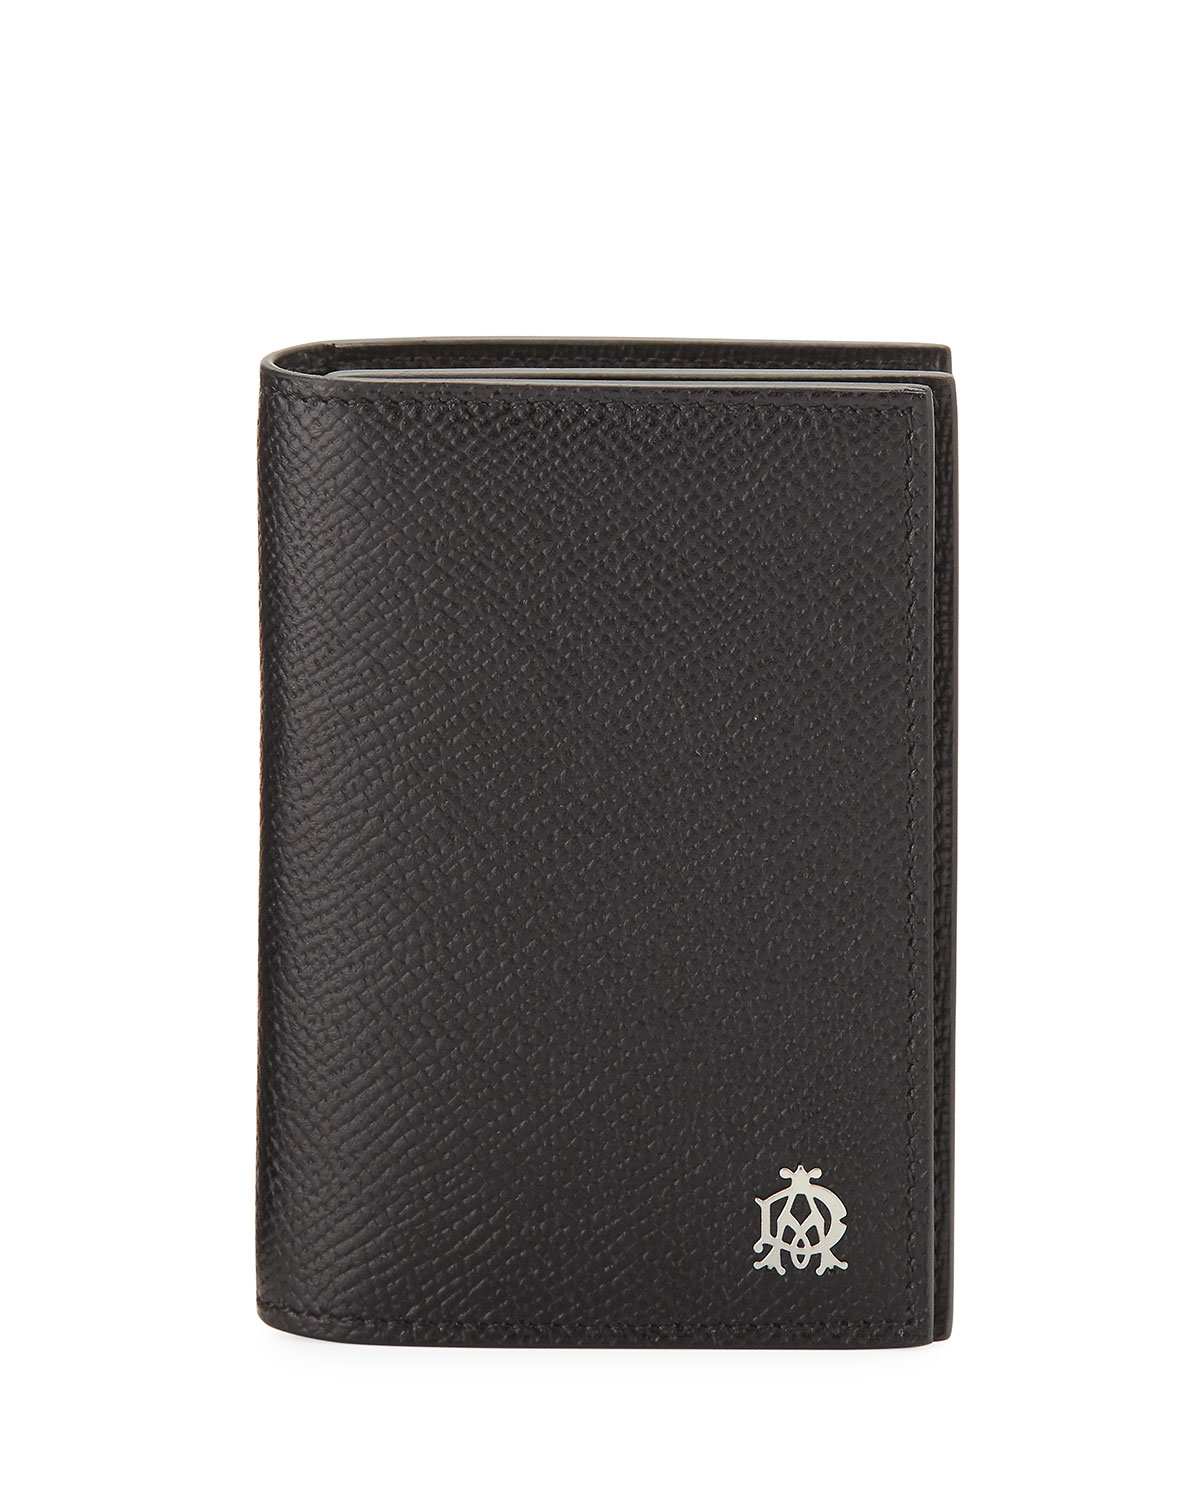 dunhill Cadogan Business Card Case, Black | Neiman Marcus